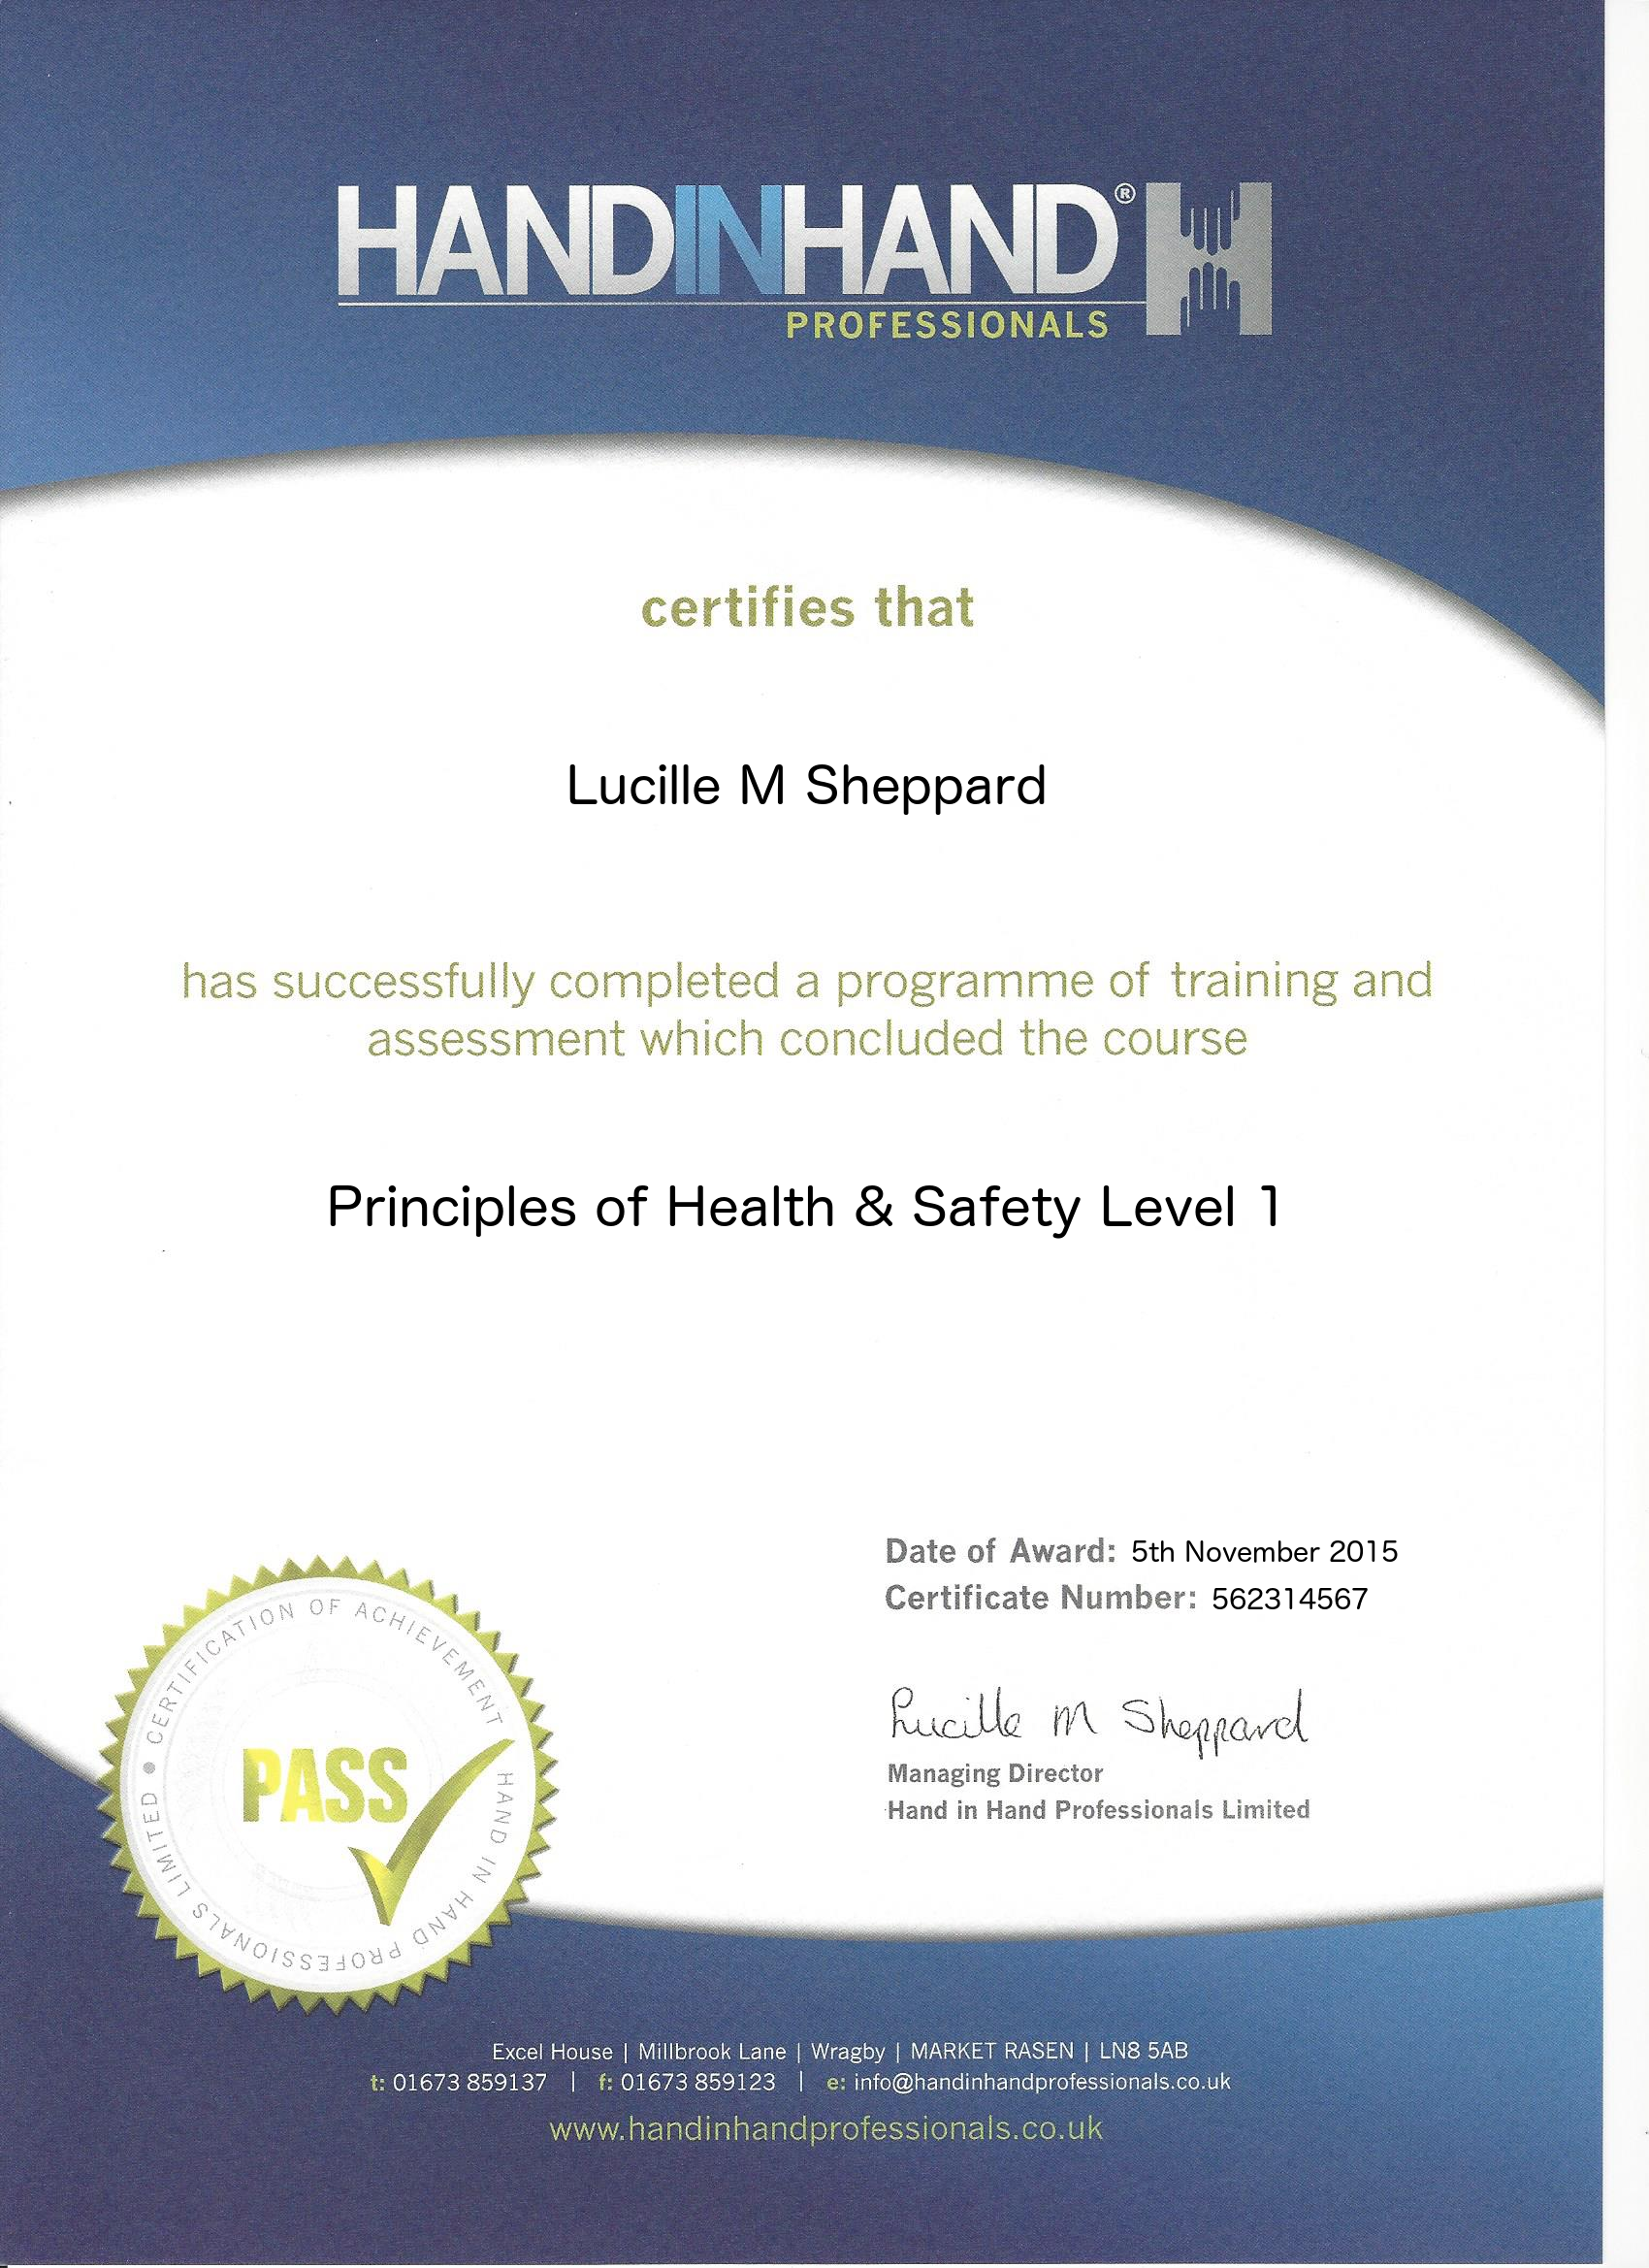 principles of health and safety level 1 course certificate